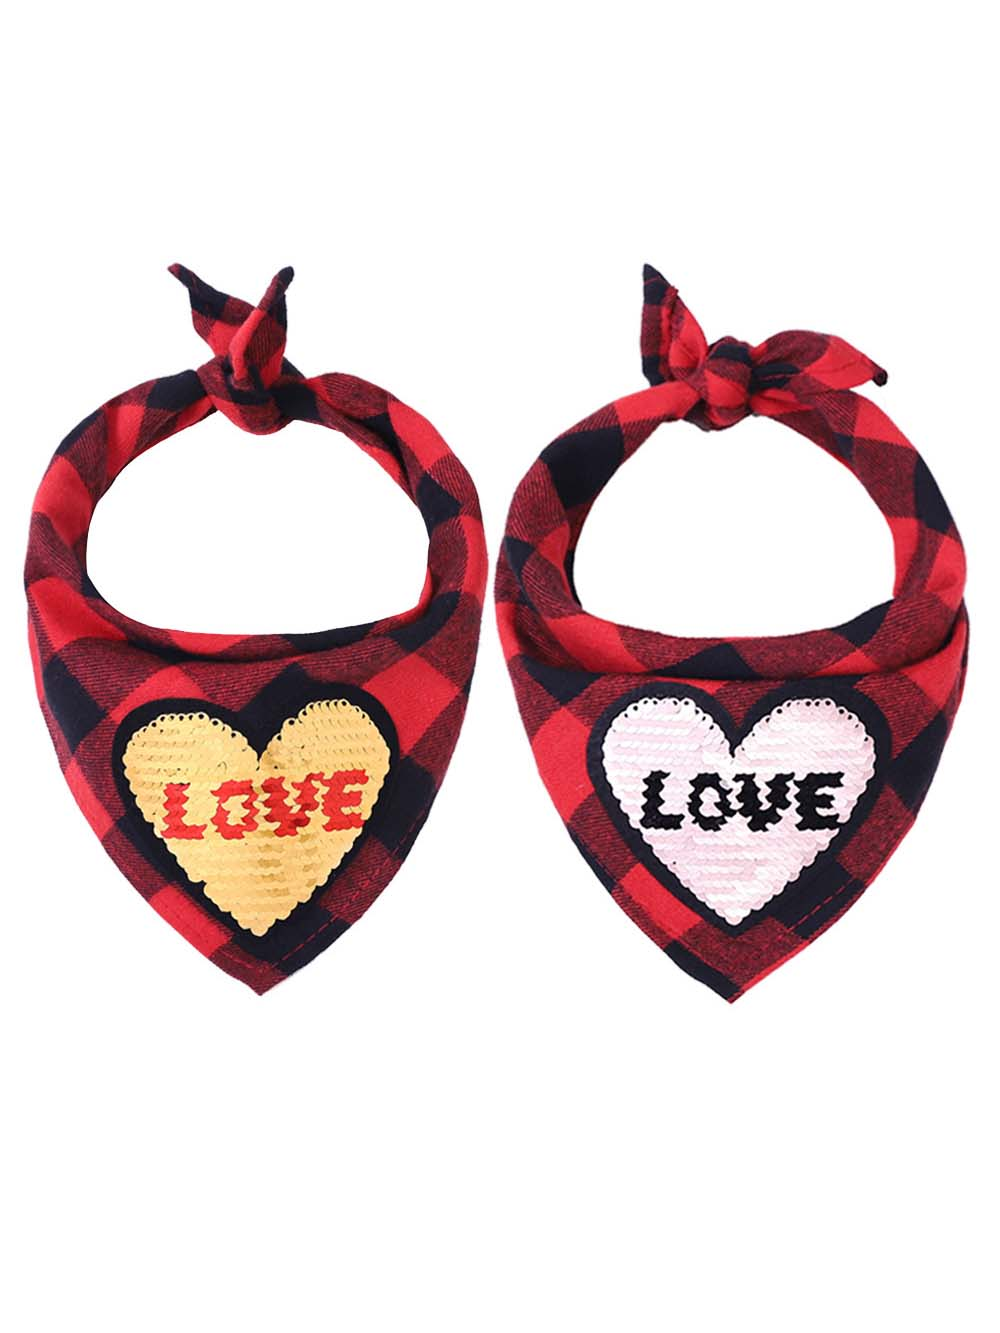 Cute Valentine's Day Pet Bib